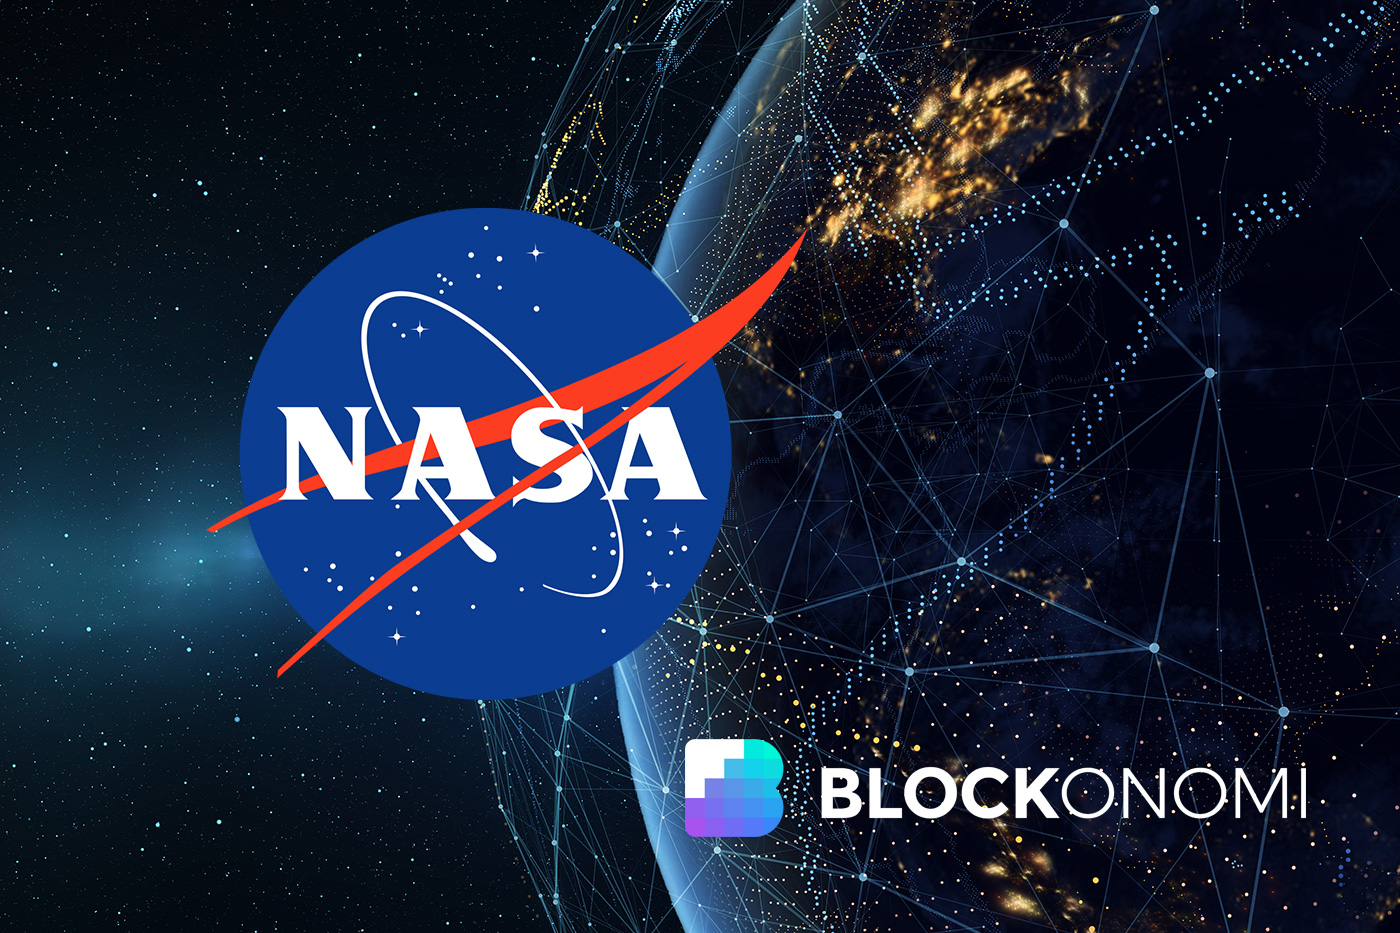 NASA Blockchain